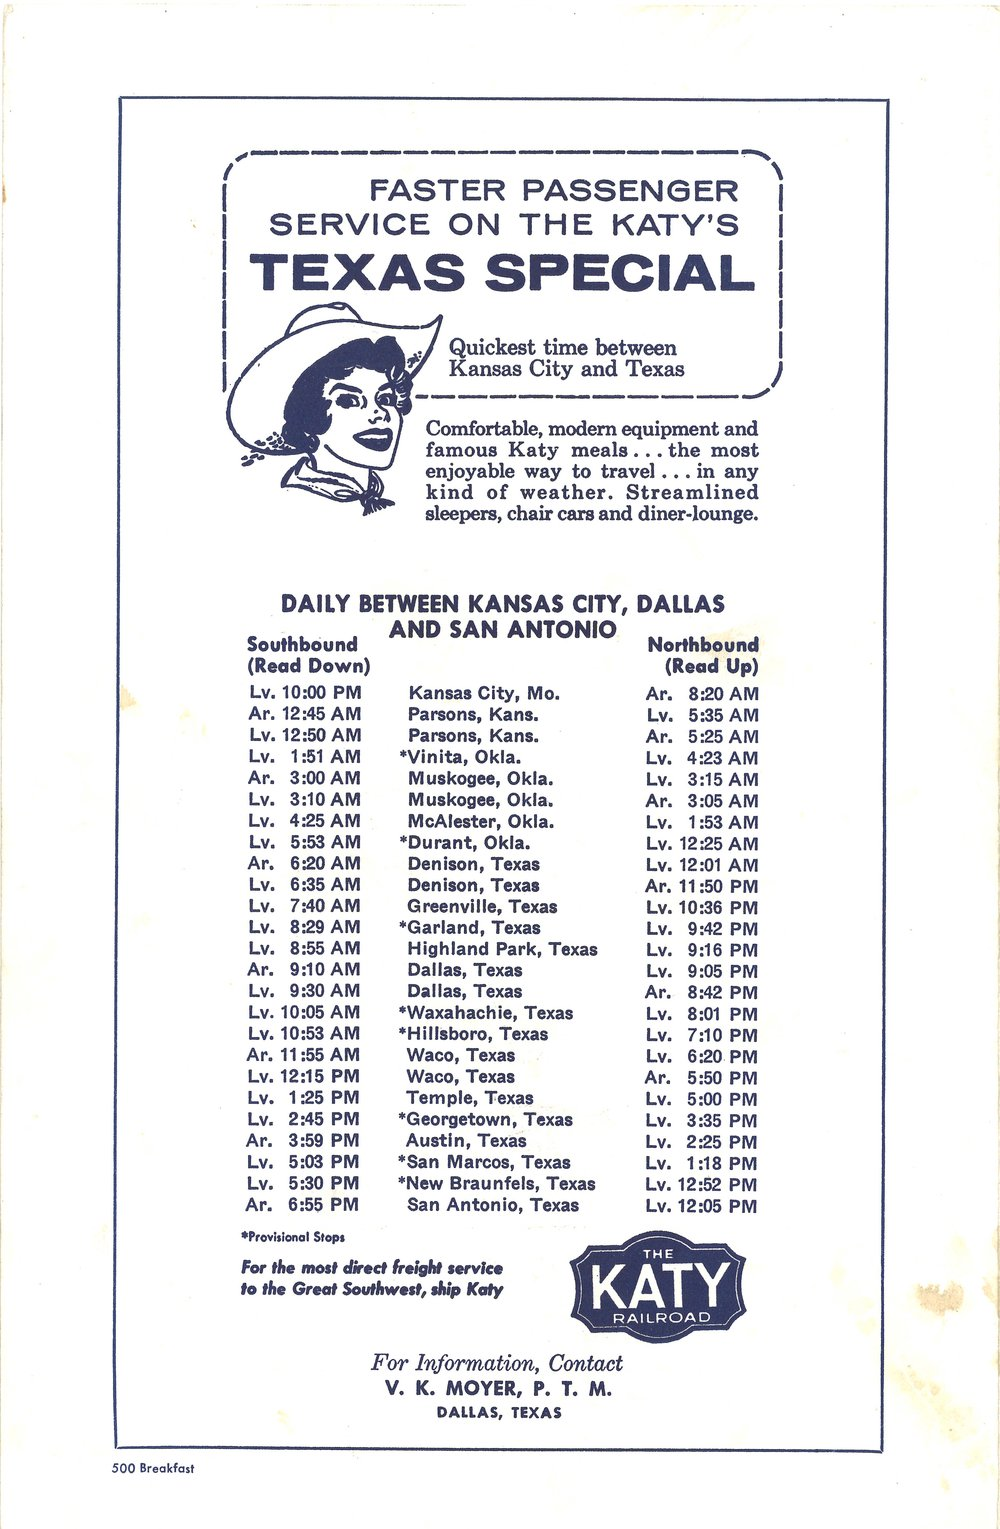 MKT Railroad Katy Railroad Breakfast Menu_sm3.jpg